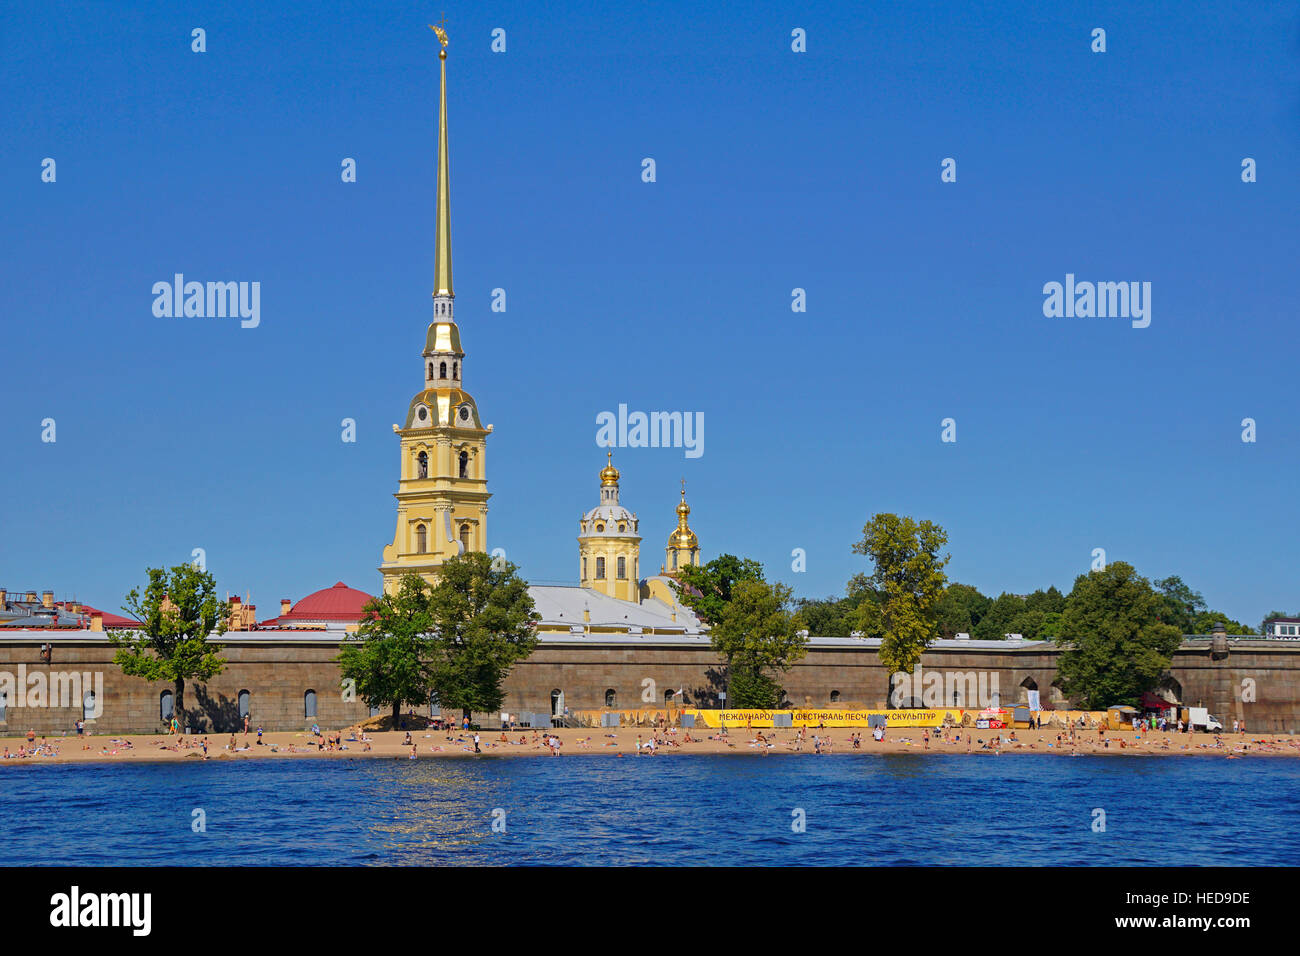 Peter and Paul Fortress with beach on Neva River in St. Petersburg, Russia. - Stock Image